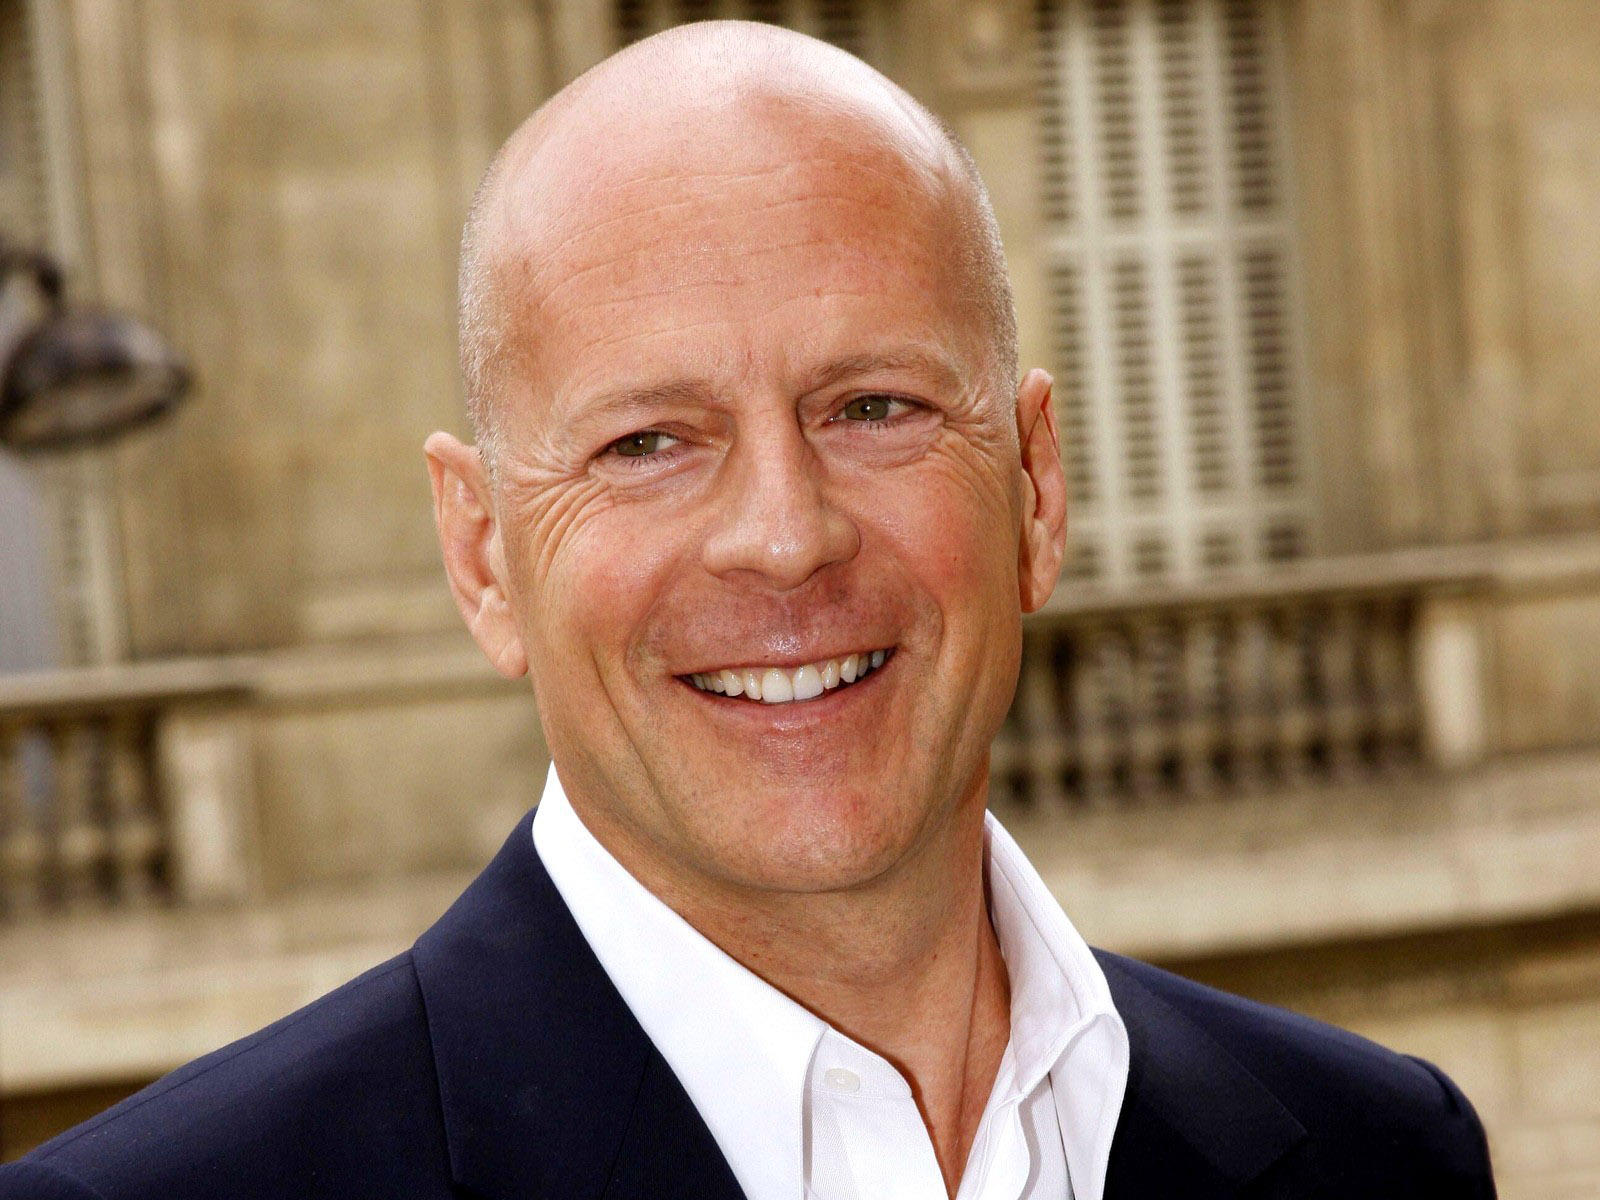 bruce willis producer background image